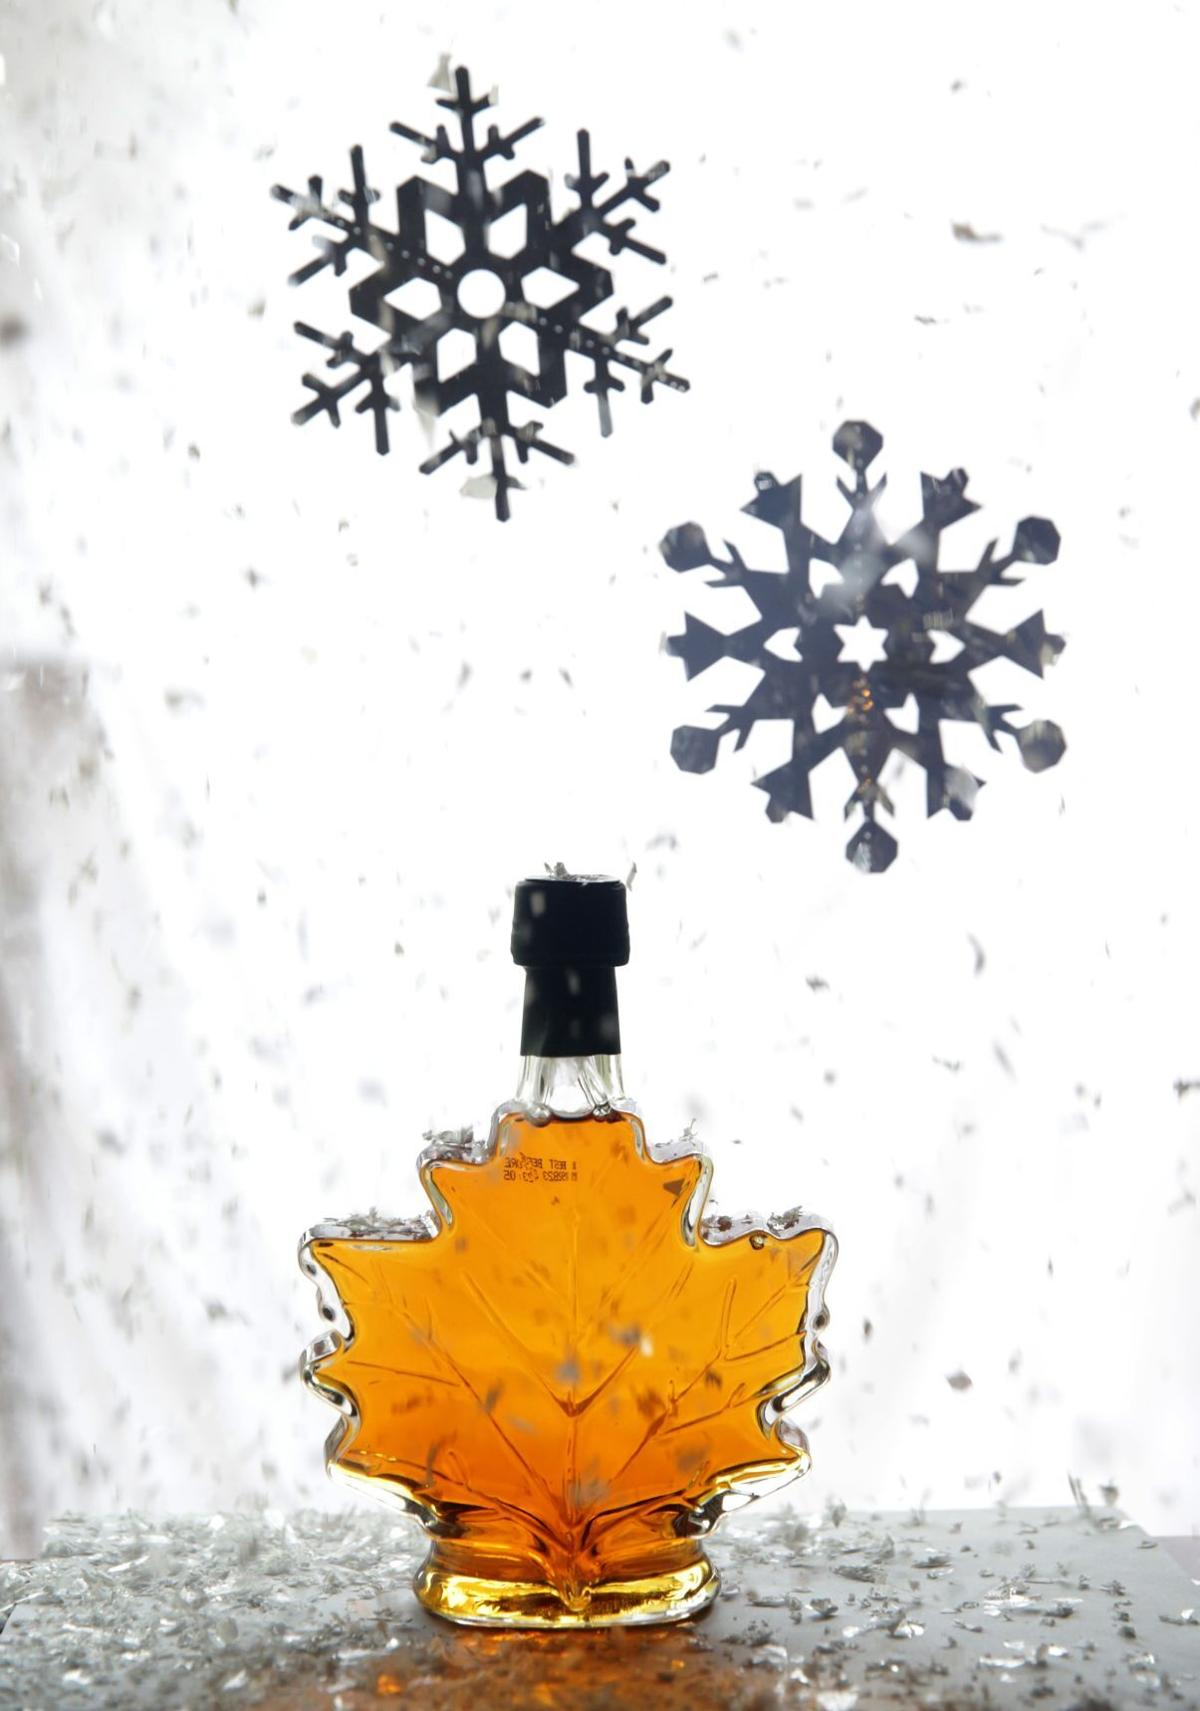 Cook with maple syrup for winter treat